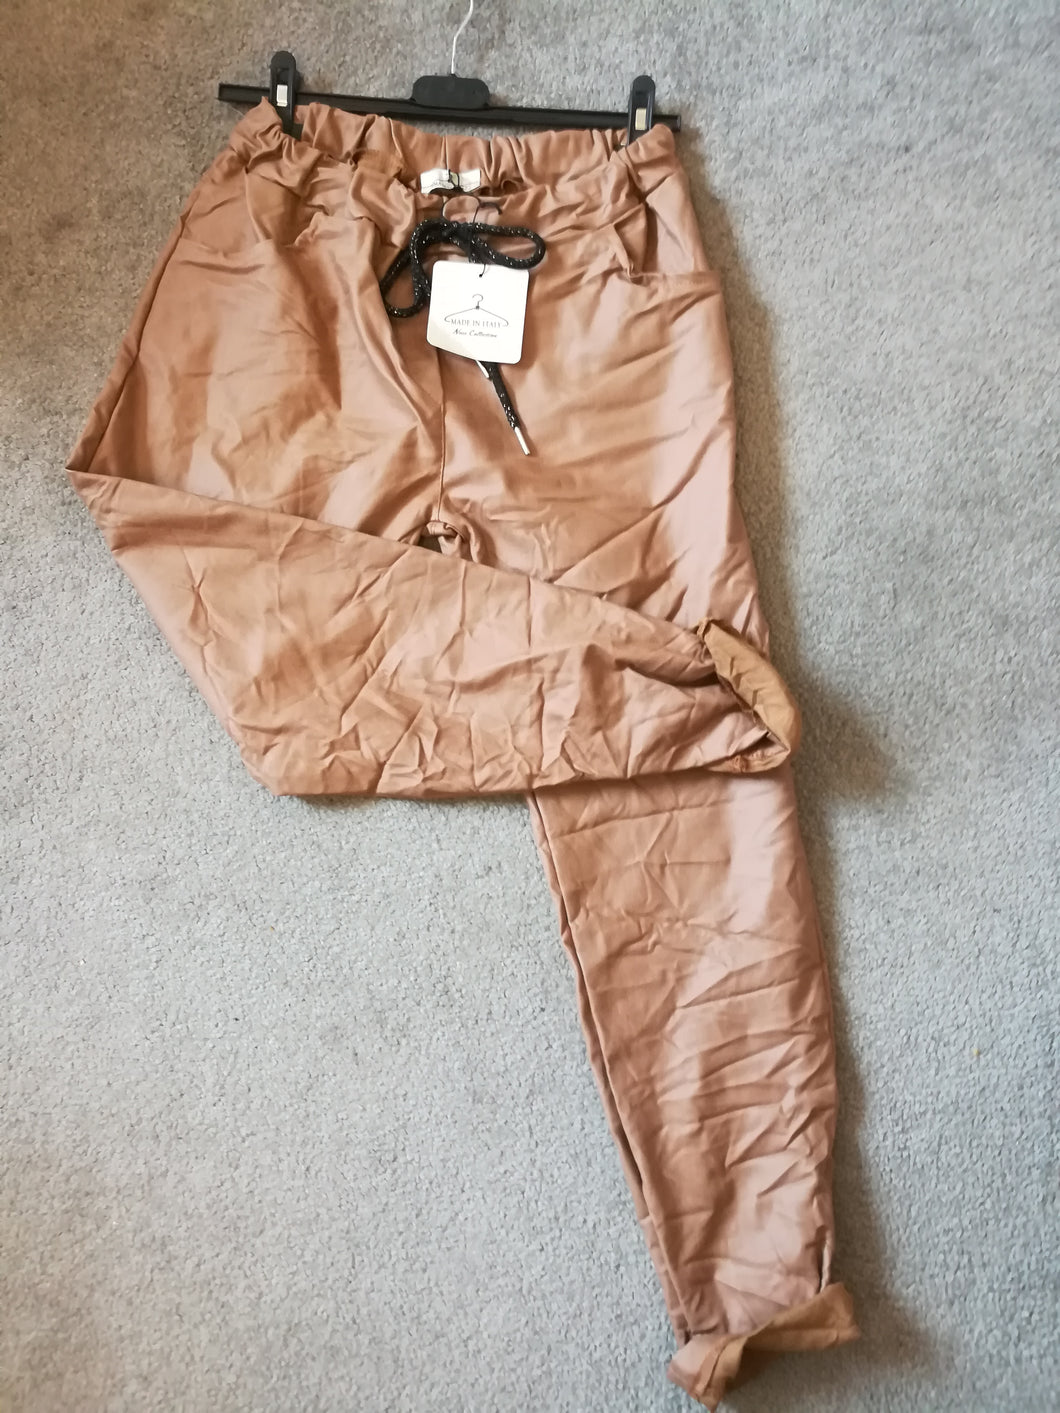 PU Leather Look Magic Trousers one size 10/16 £28 SALE PRICE £10 NO RETURN